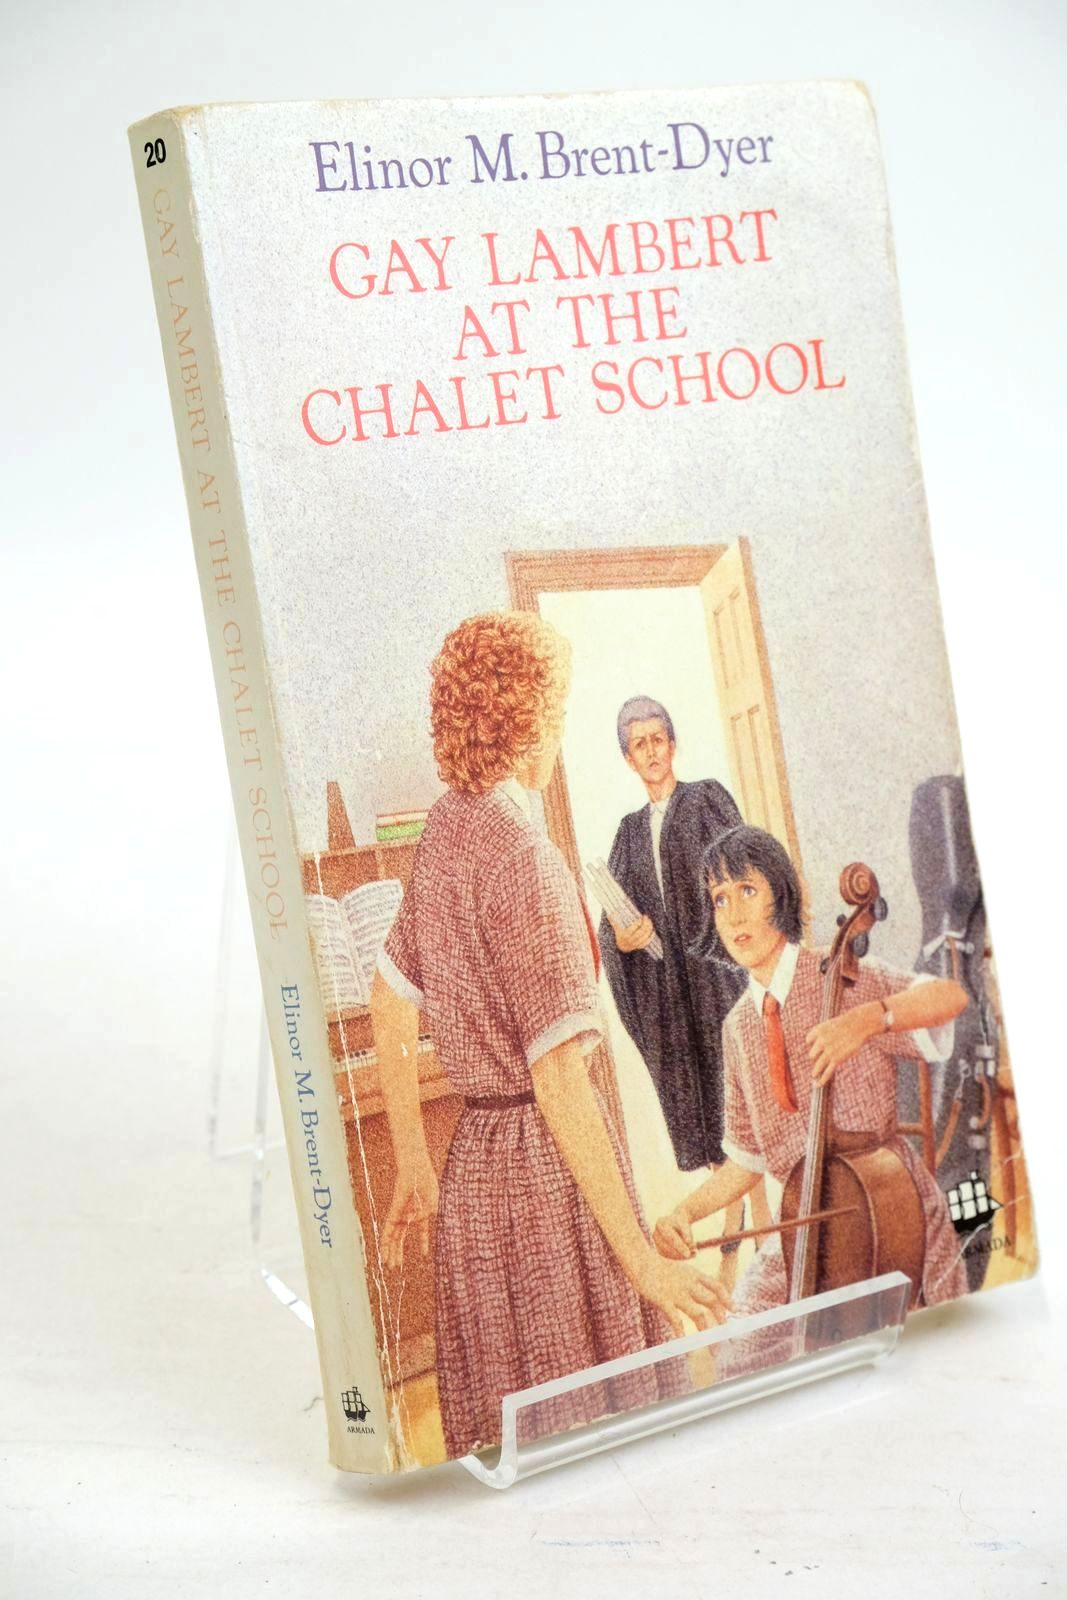 Photo of GAY LAMBERT AT THE CHALET SCHOOL written by Brent-Dyer, Elinor M. published by Armada (STOCK CODE: 1320823)  for sale by Stella & Rose's Books